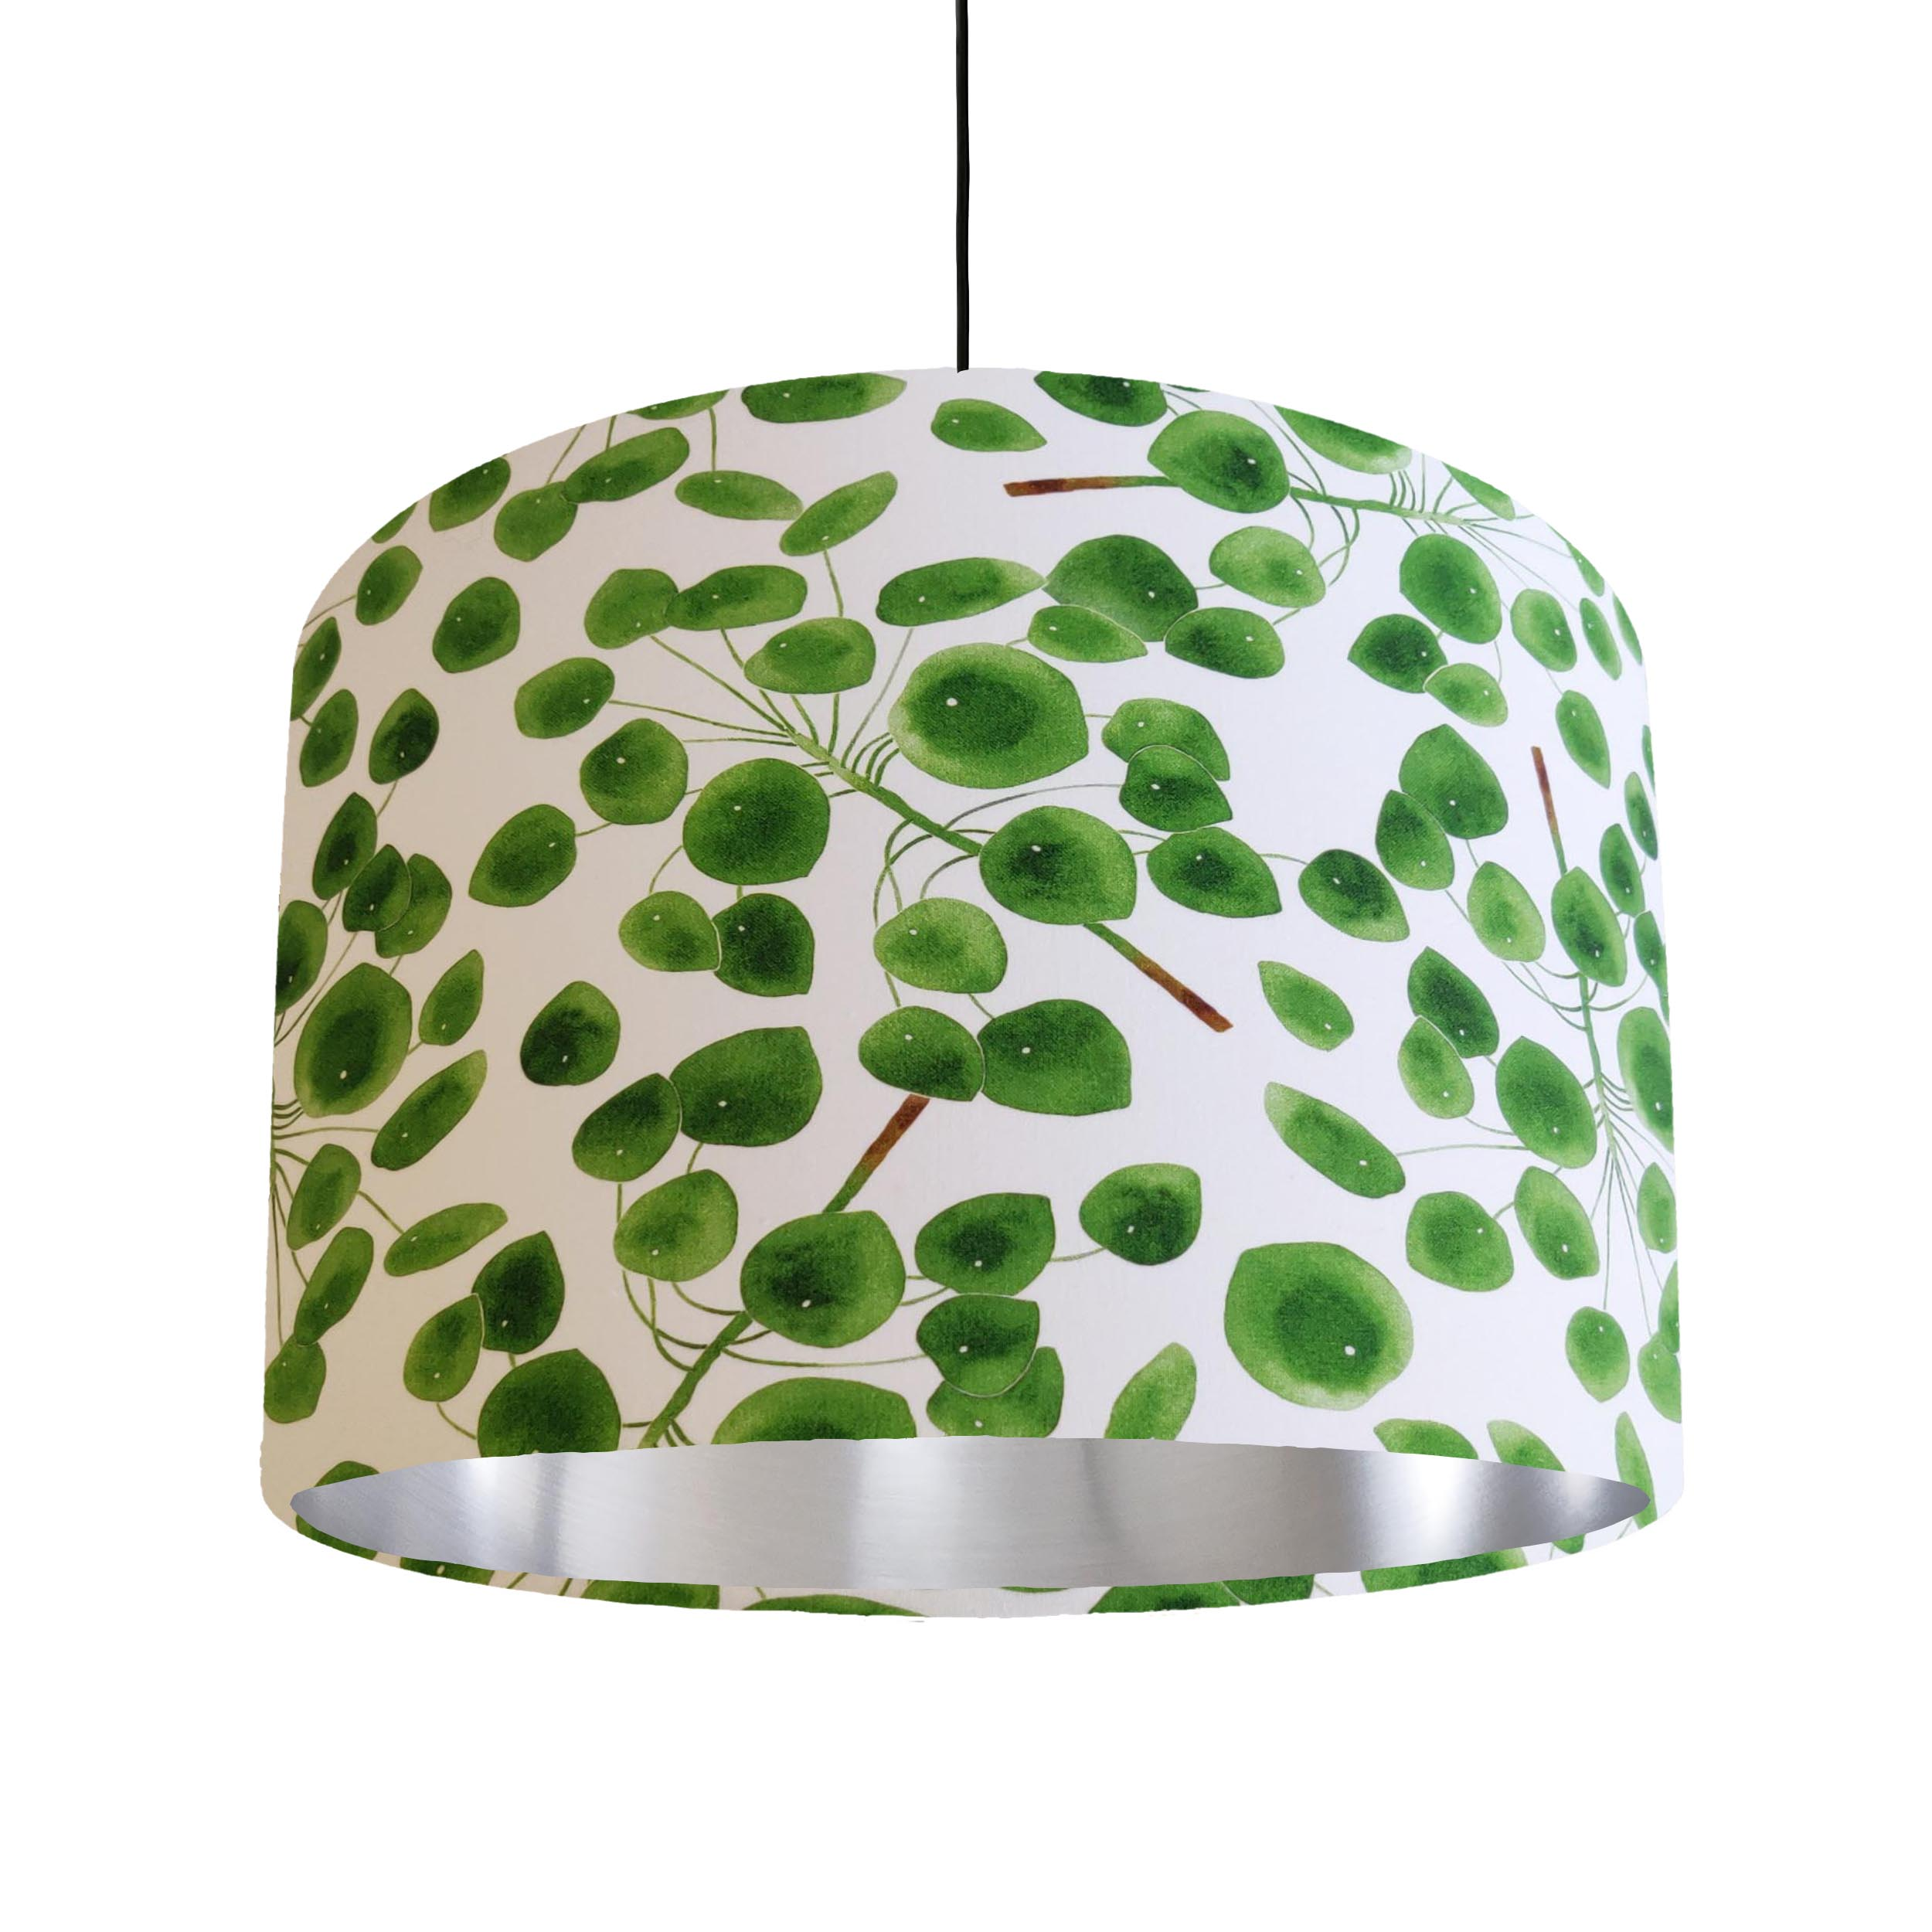 Eucalyptus Leaves Lampshade in Green and White Cotton with Silver Lining